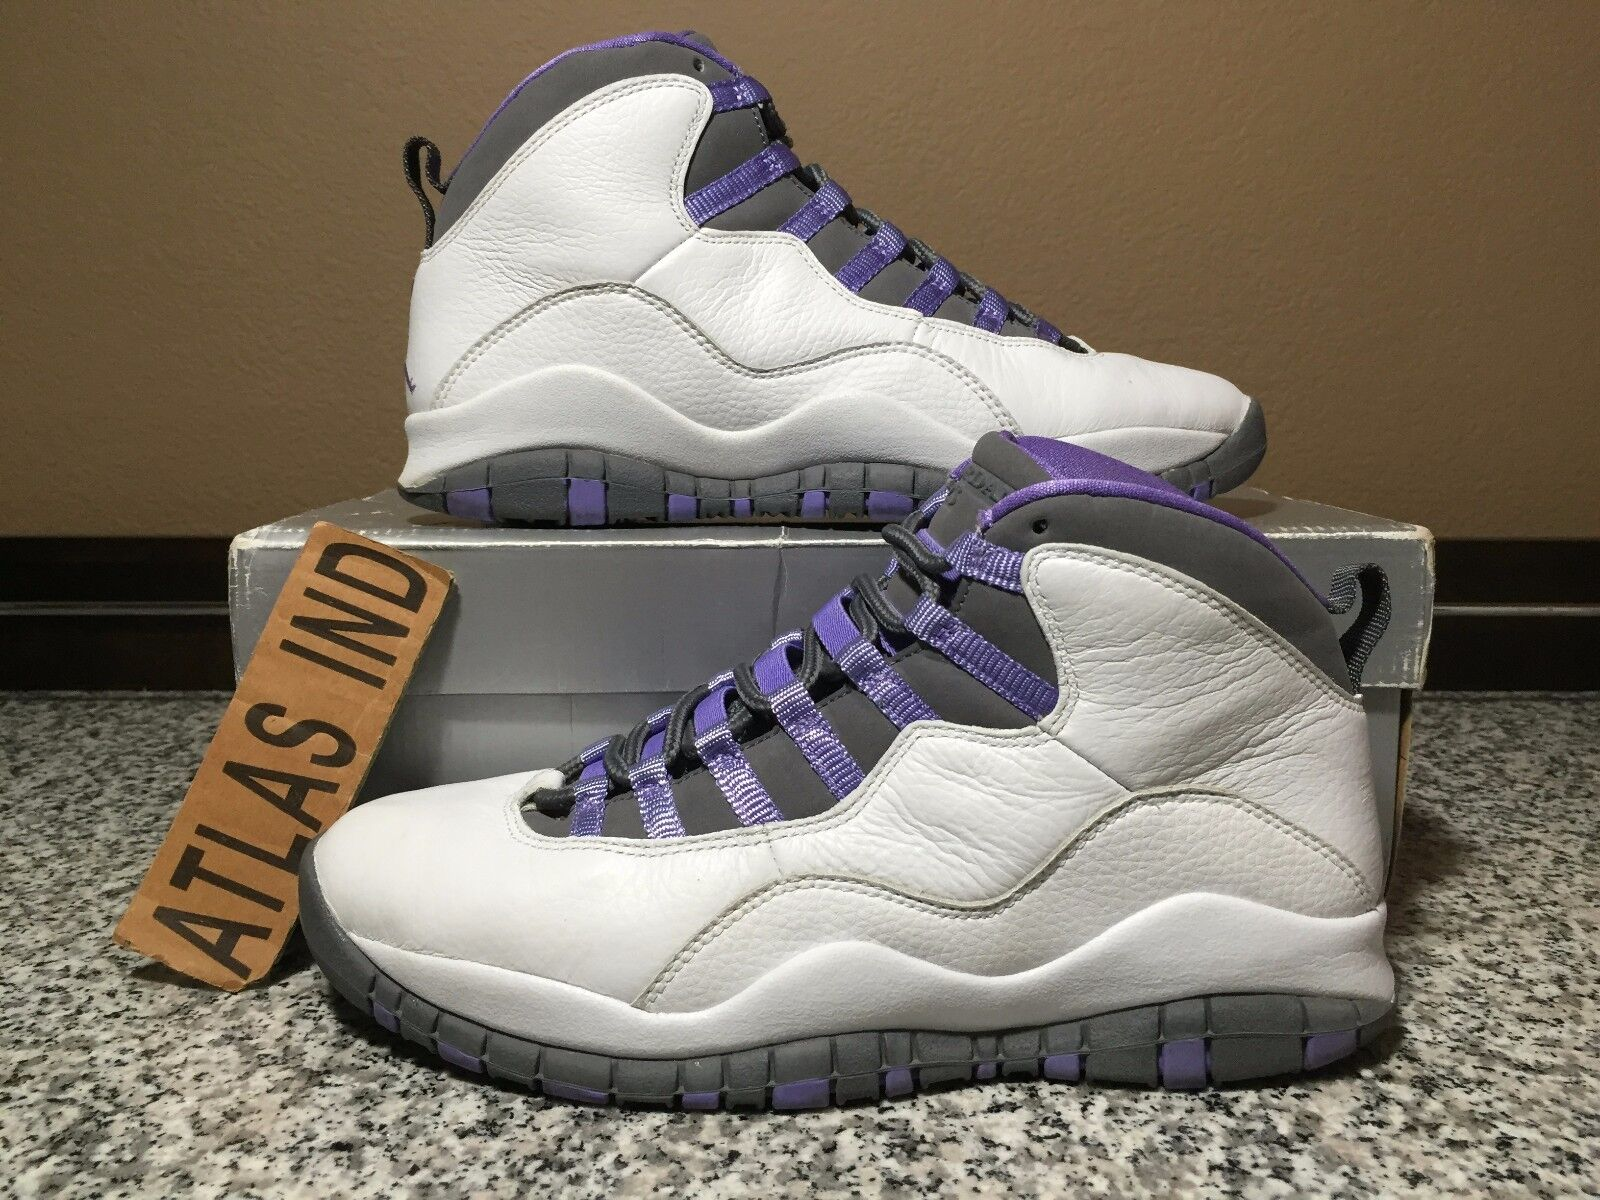 AIR JORDAN 10 RETRO Violet White Purple Nike X 1 3 4 5 6 11 12 OVO DB 2005 9 7.5 The latest discount shoes for men and women